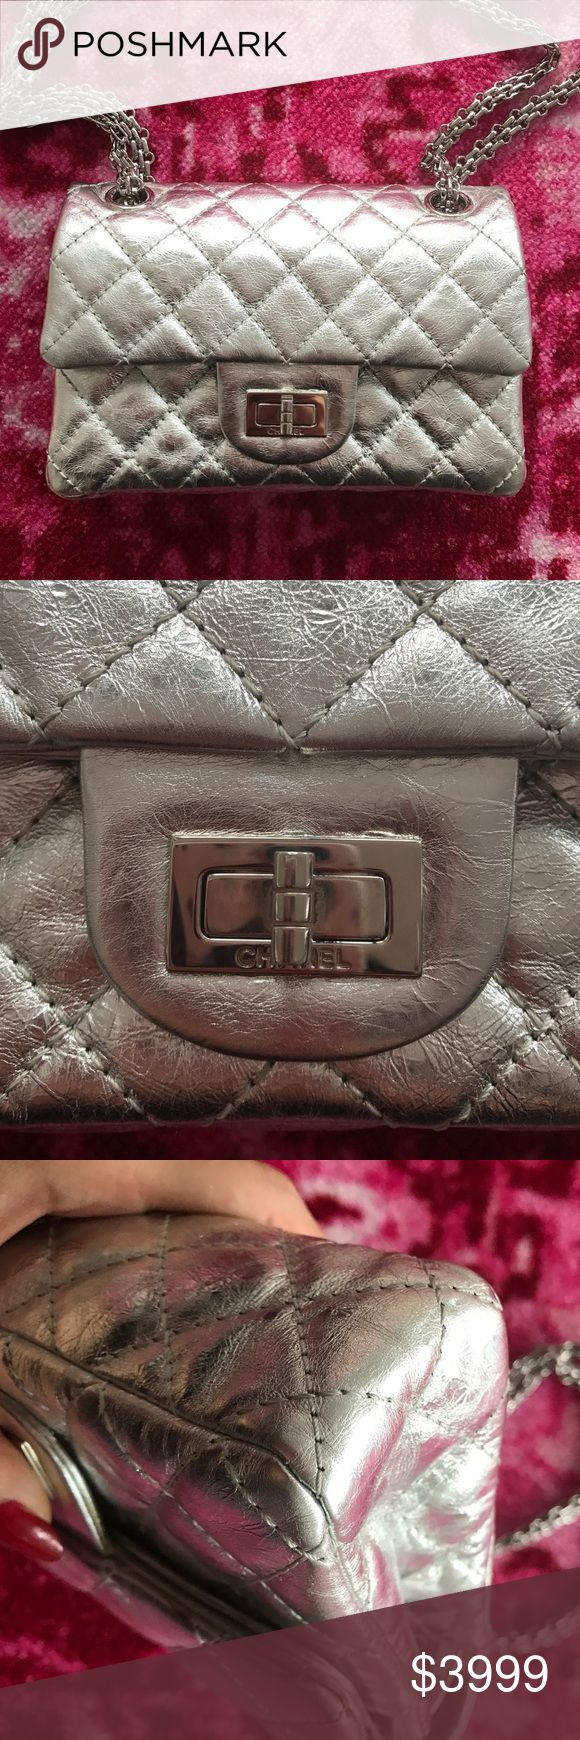 new Authentic Chanel double flap metallic Silver The bag is new, never used!! Rare. Reissue 2.55 double flap bag size 224.  I also have Chanel Reissue,classic double flap bag, Chloe Drew/Faye bags, Bulgari serpenti forever, moschino biker, Louis Vuitton speedy ,papillion for sale in my closet. Check my closet, Bundle for discount! CHANEL Bags Crossbody Bags